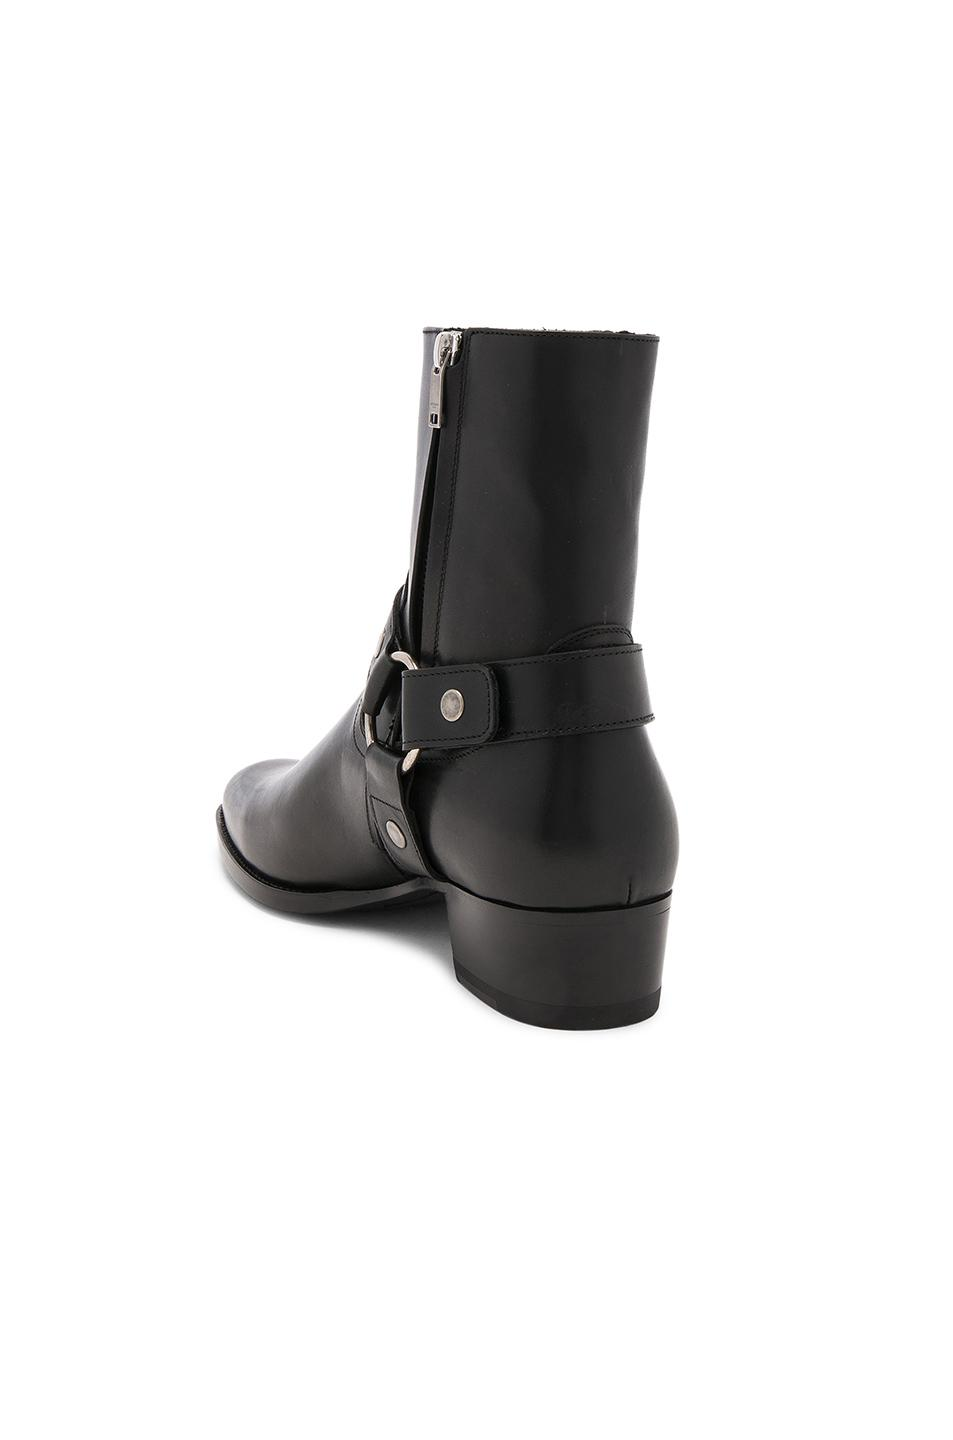 Saint Laurent Wyatt Harness Boots In Stone-Washed Leather In Black